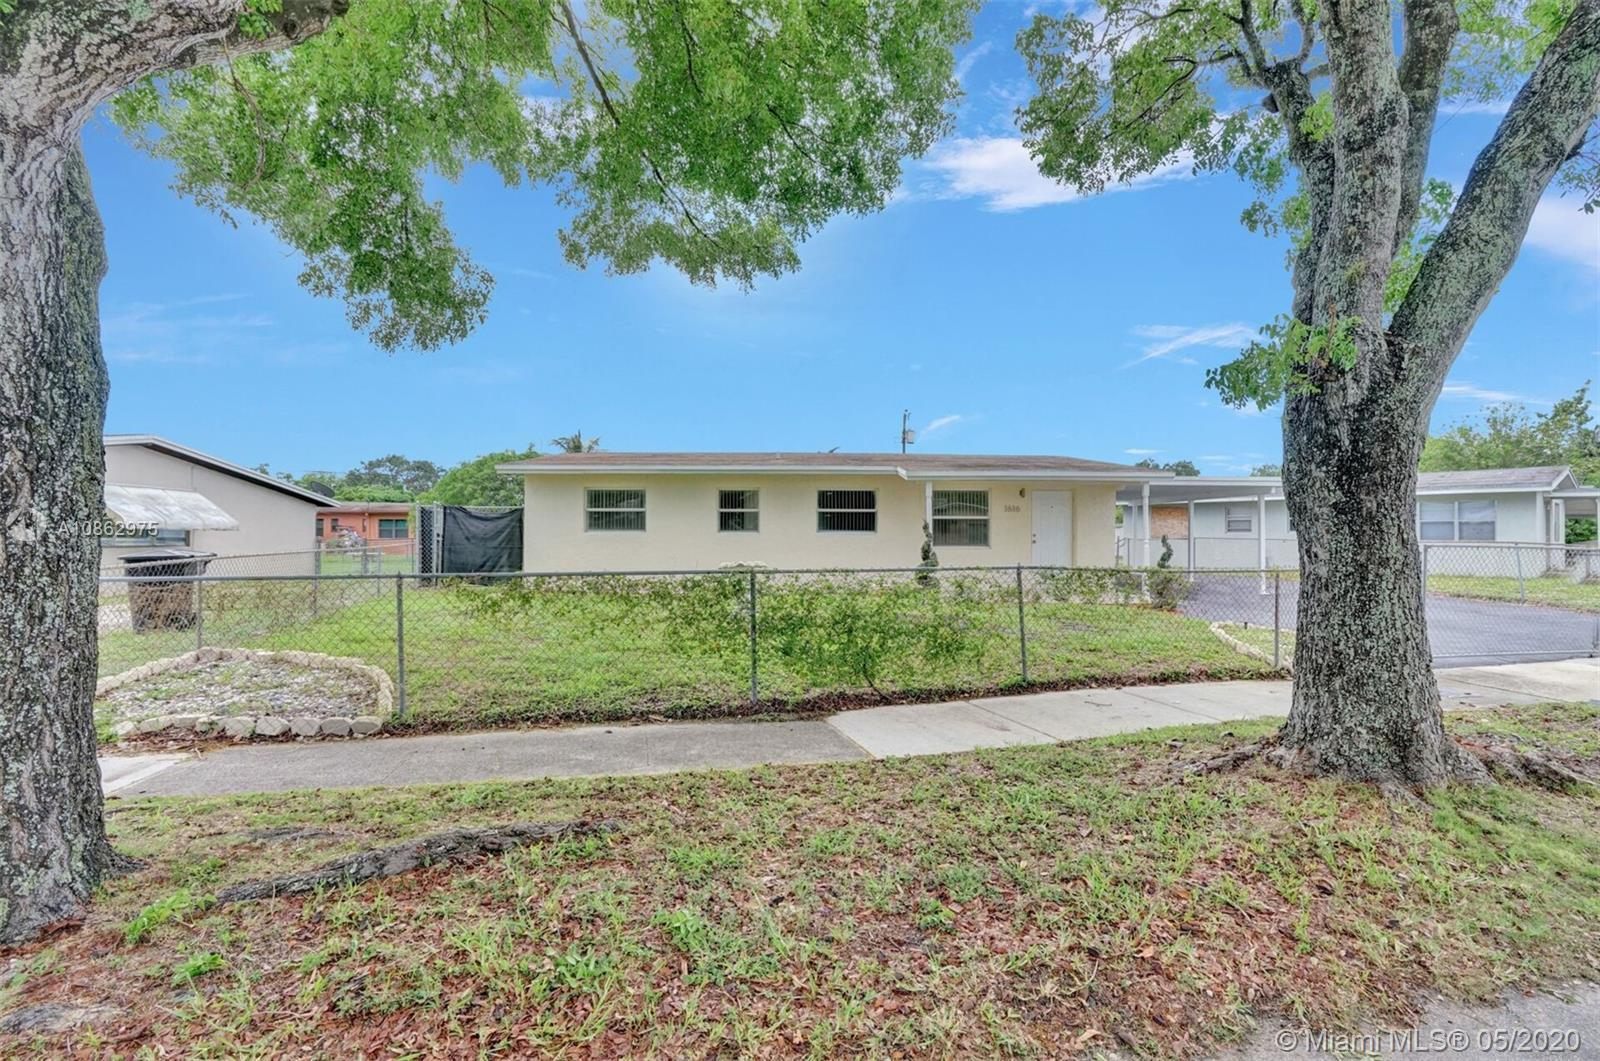 BEAUTIFULLY FULLY REMODELED 4 BEDROOM 2 BATHROOM IN THE HEART OF FORT LAUDERDALE! PERFECT STARTER HO